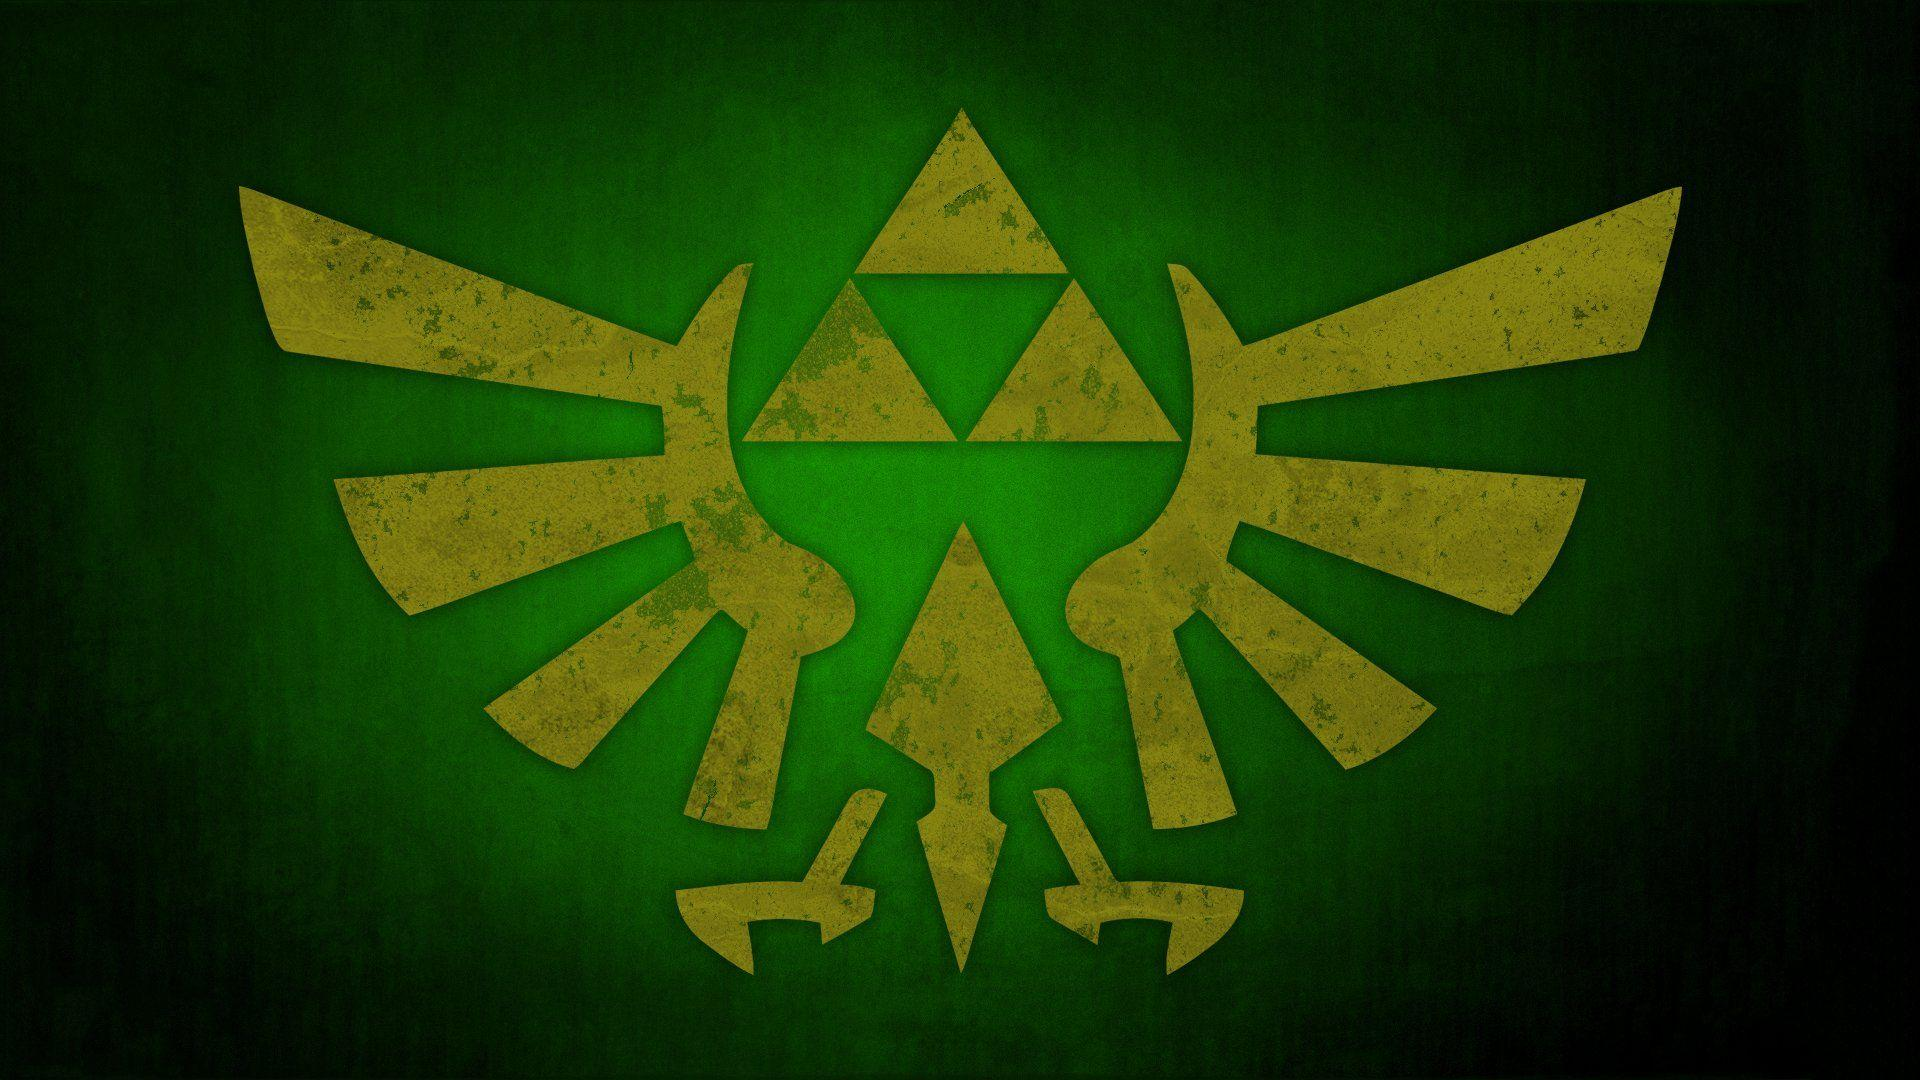 Zelda Triforce Wallpapers Hd Wallpaper Cave